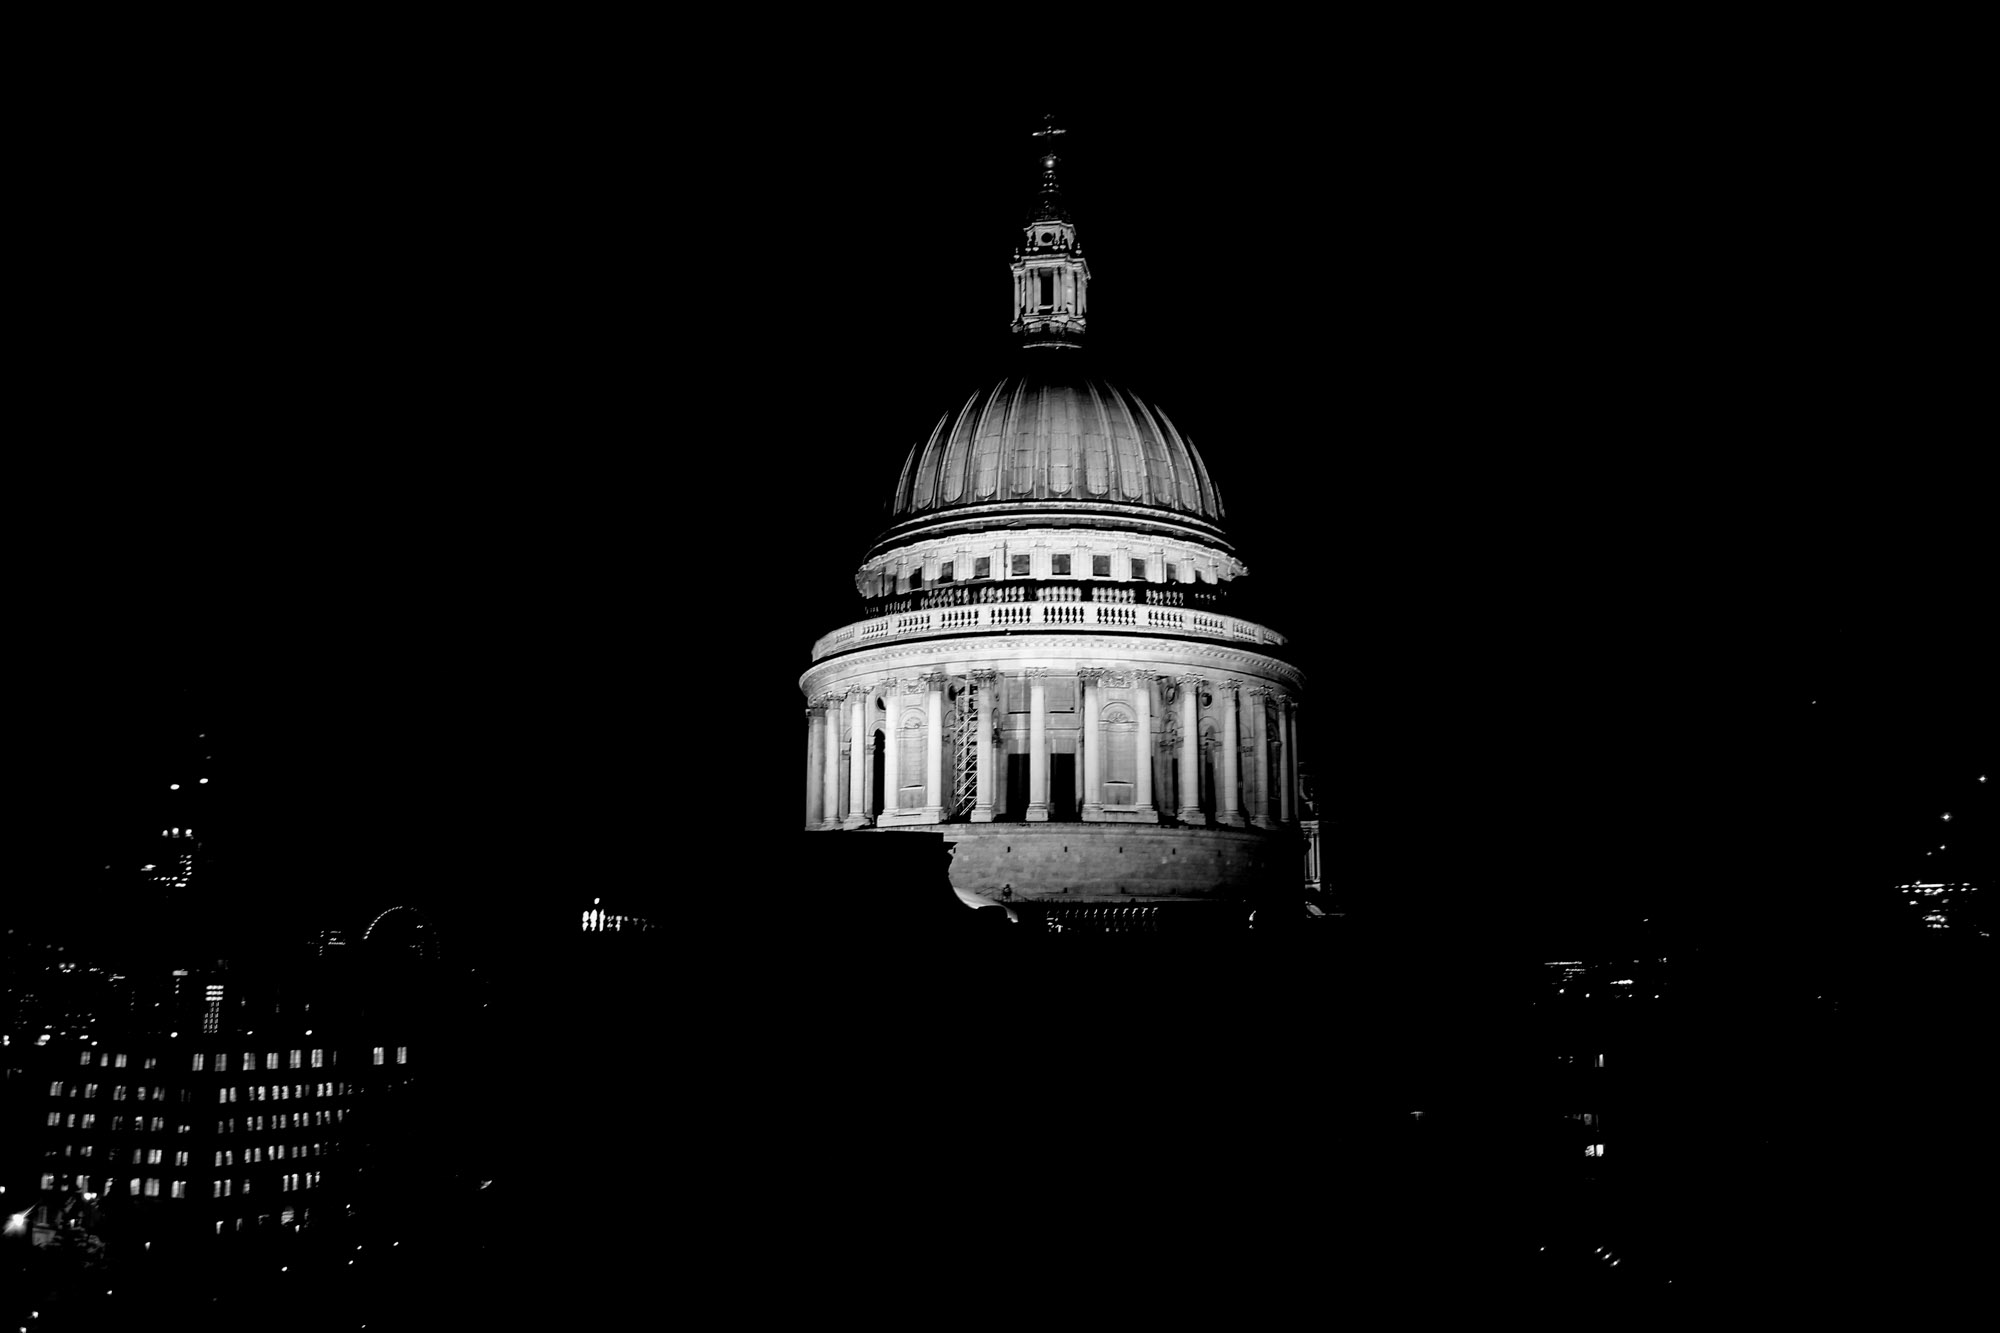 The dome of St. Paul's Cathedral London illuminated at night